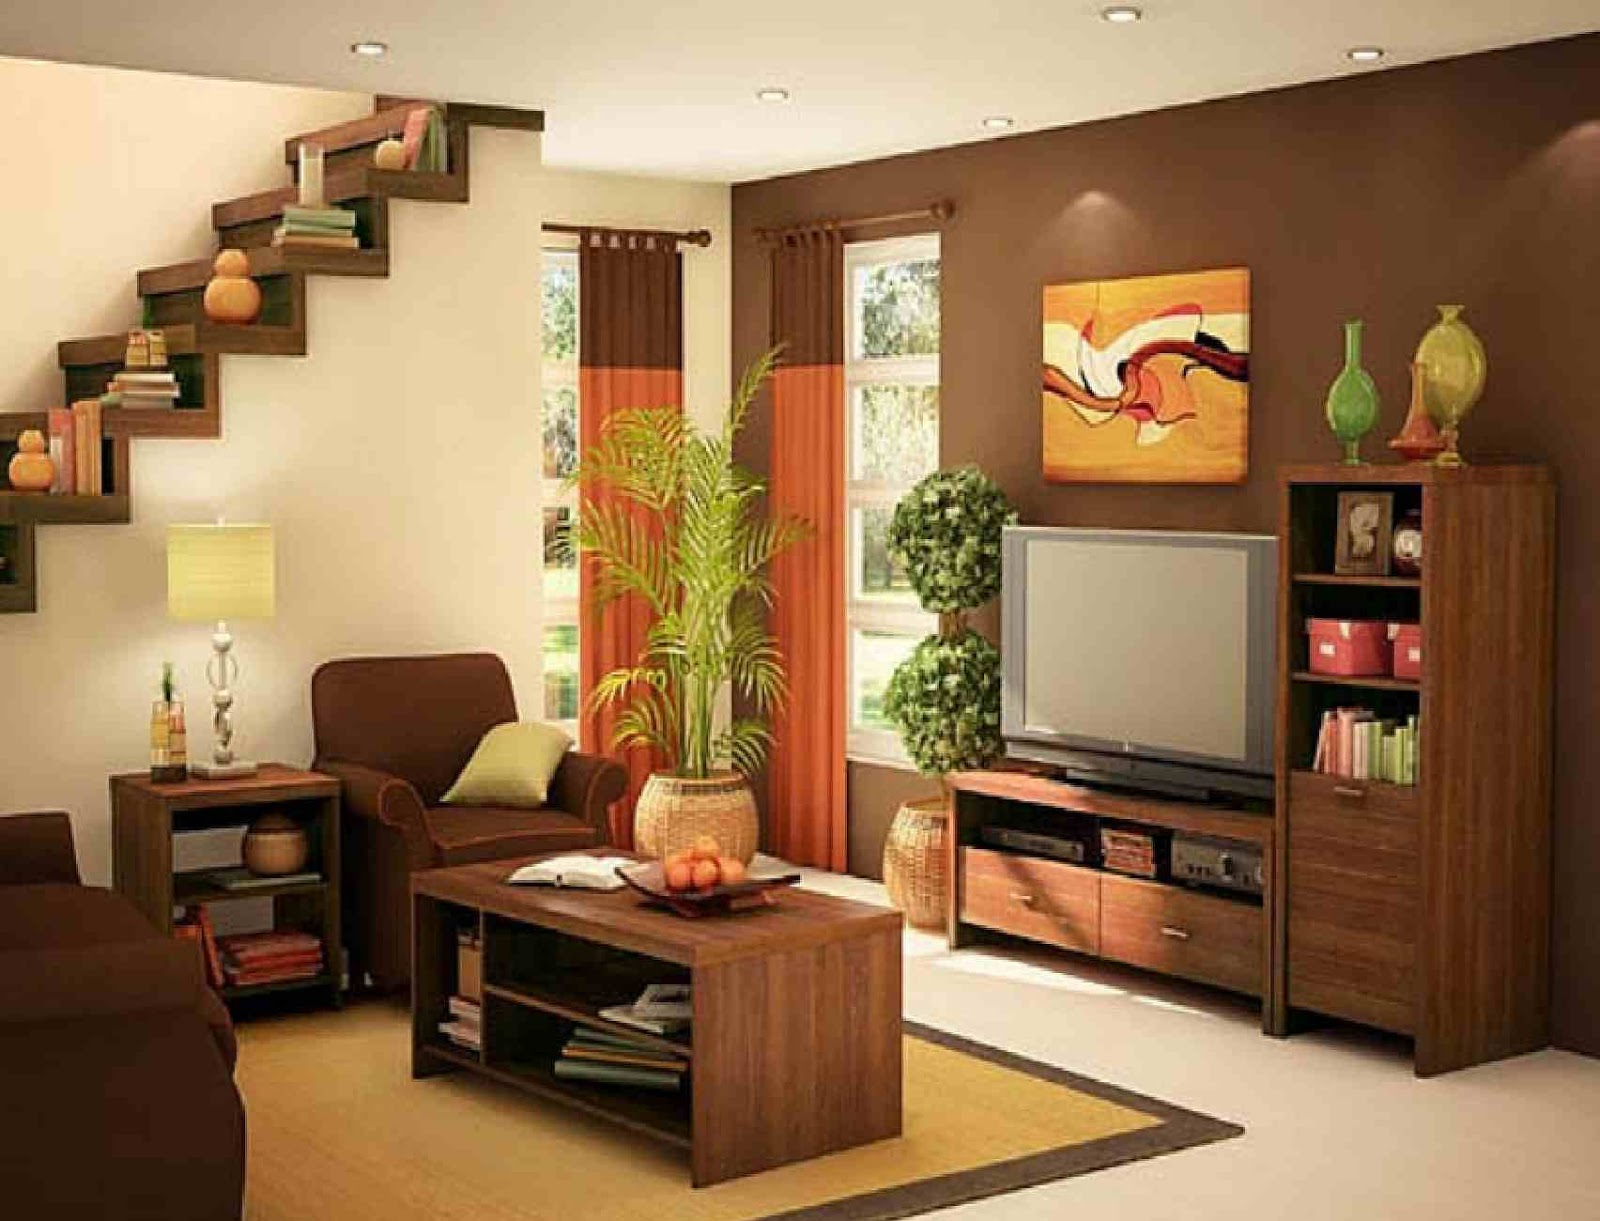 Simple Living Room Ideas On Contemporary Colonial Interior Design